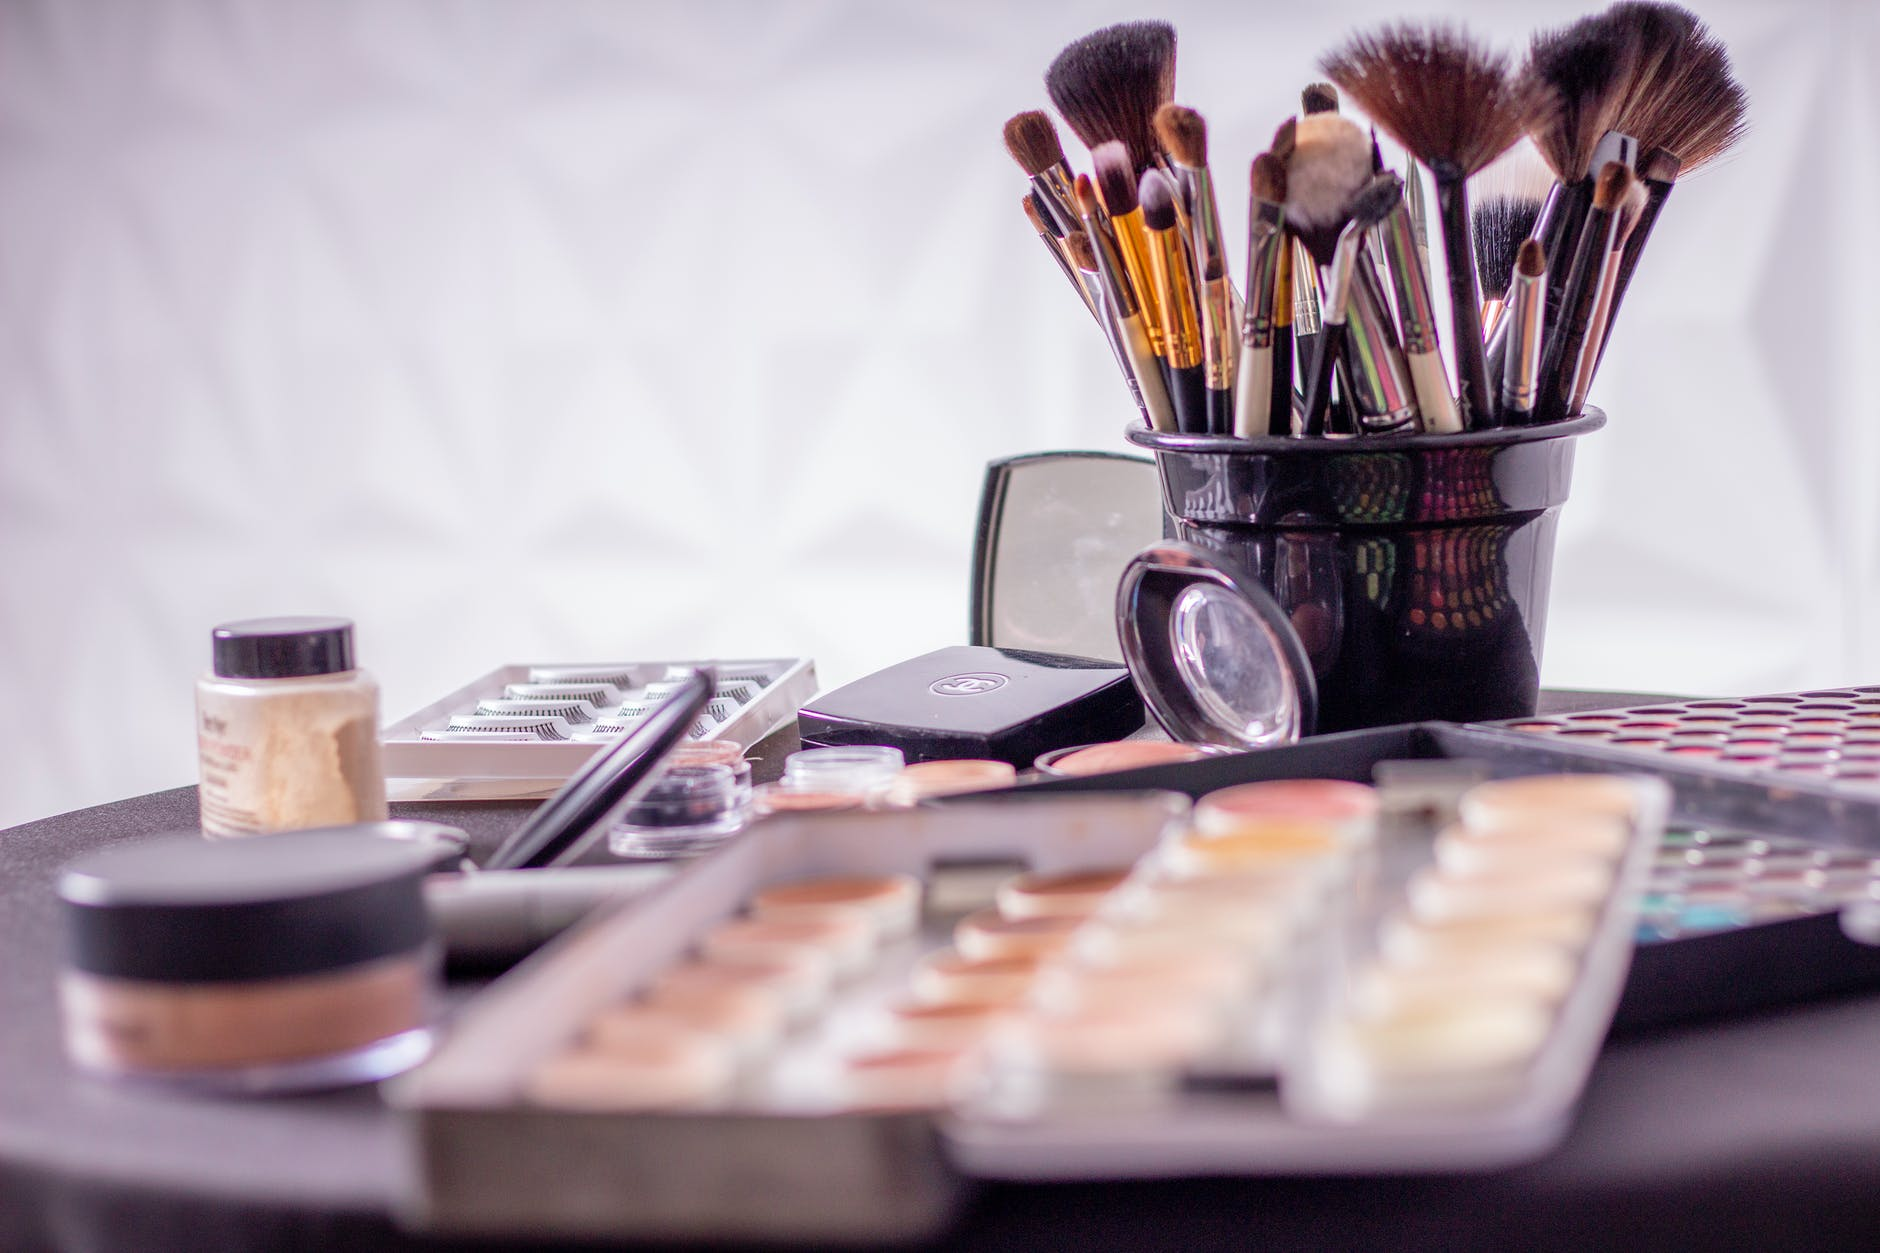 How to Make Your Own Makeup